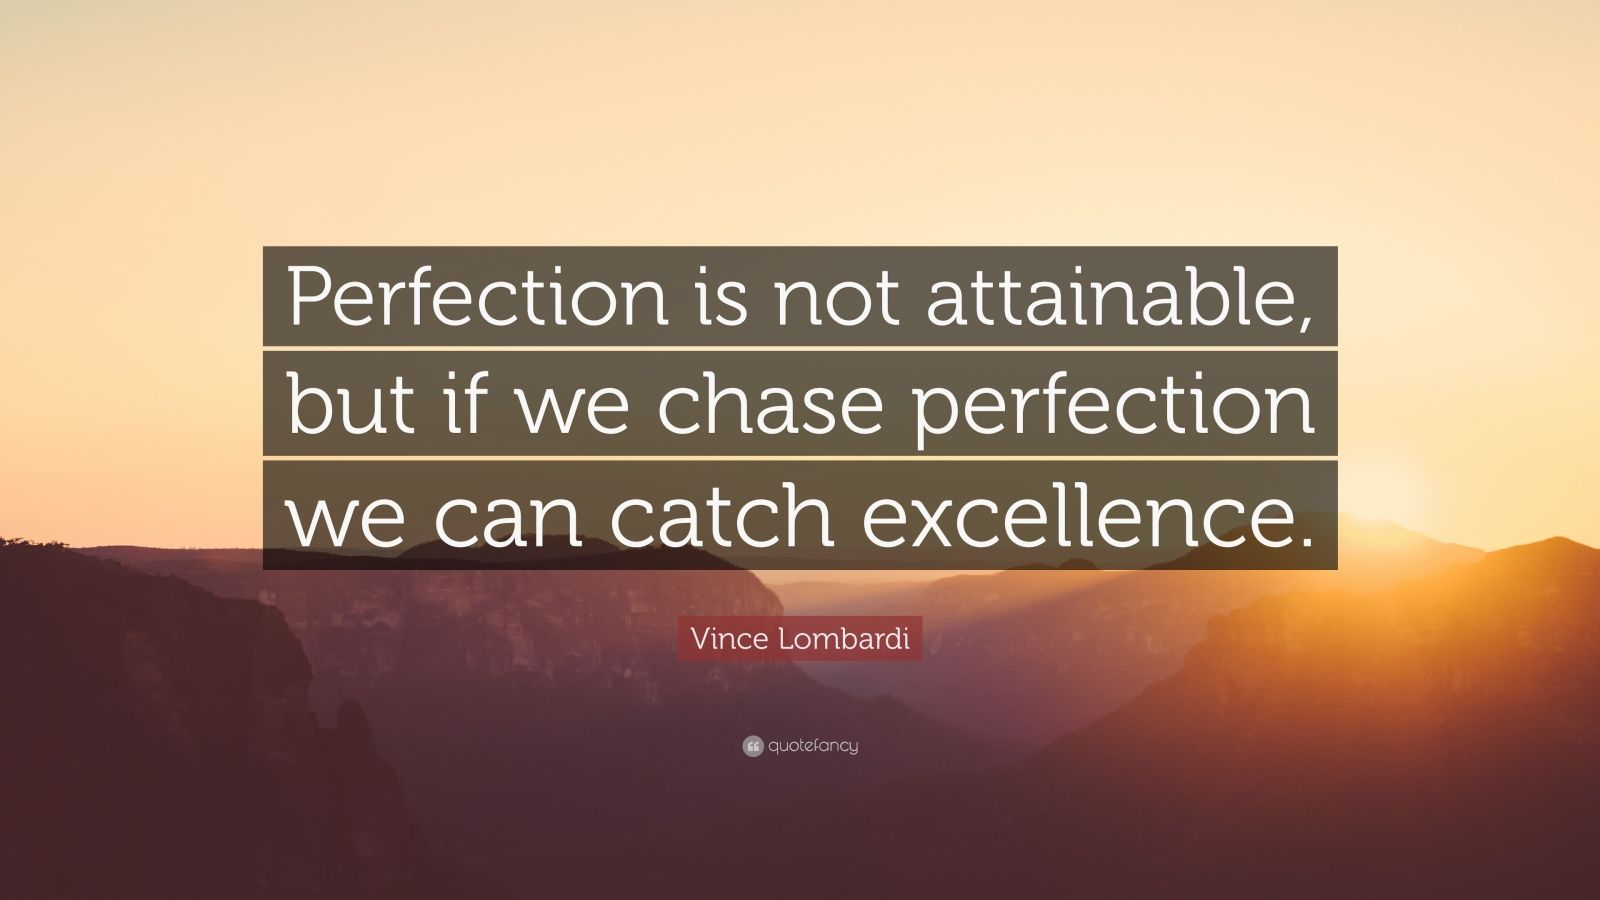 Funny Motivational Wallpapers With Quotes Vince Lombardi Quote Perfection Is Not Attainable But